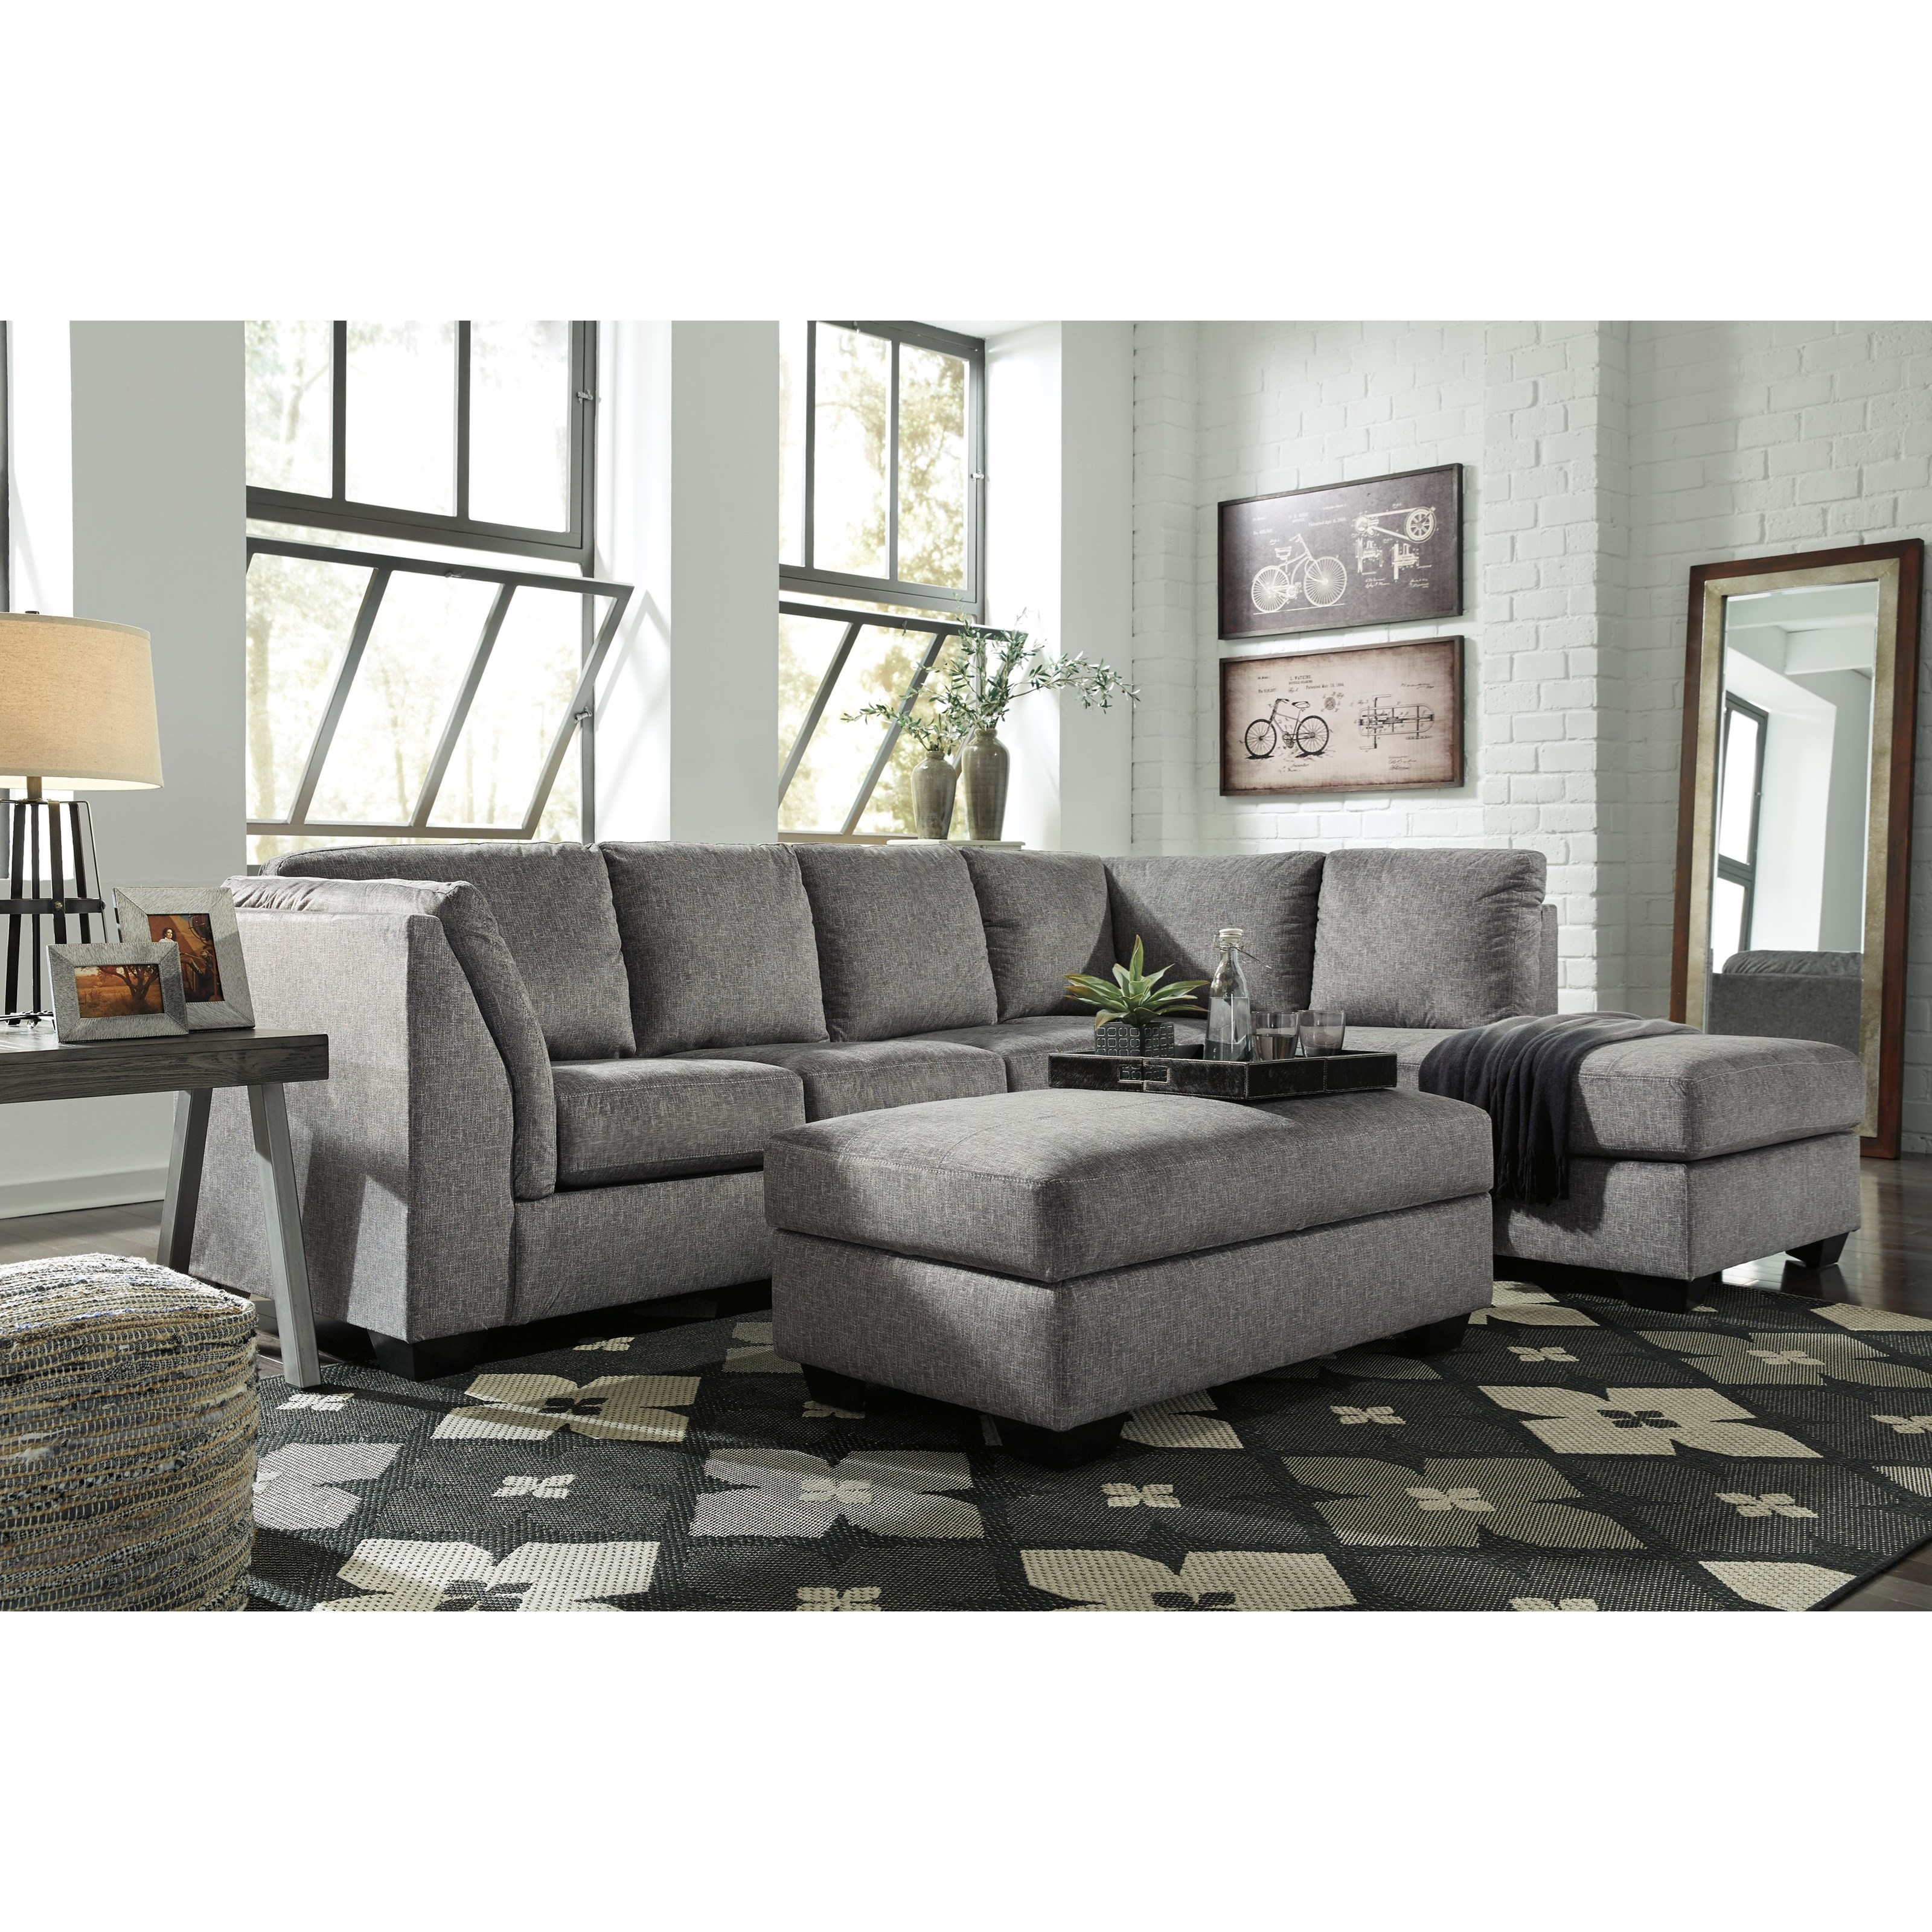 Benchcraft by ashley belcastel 2 piece sectional with for Andrea 2 piece sleeper chaise